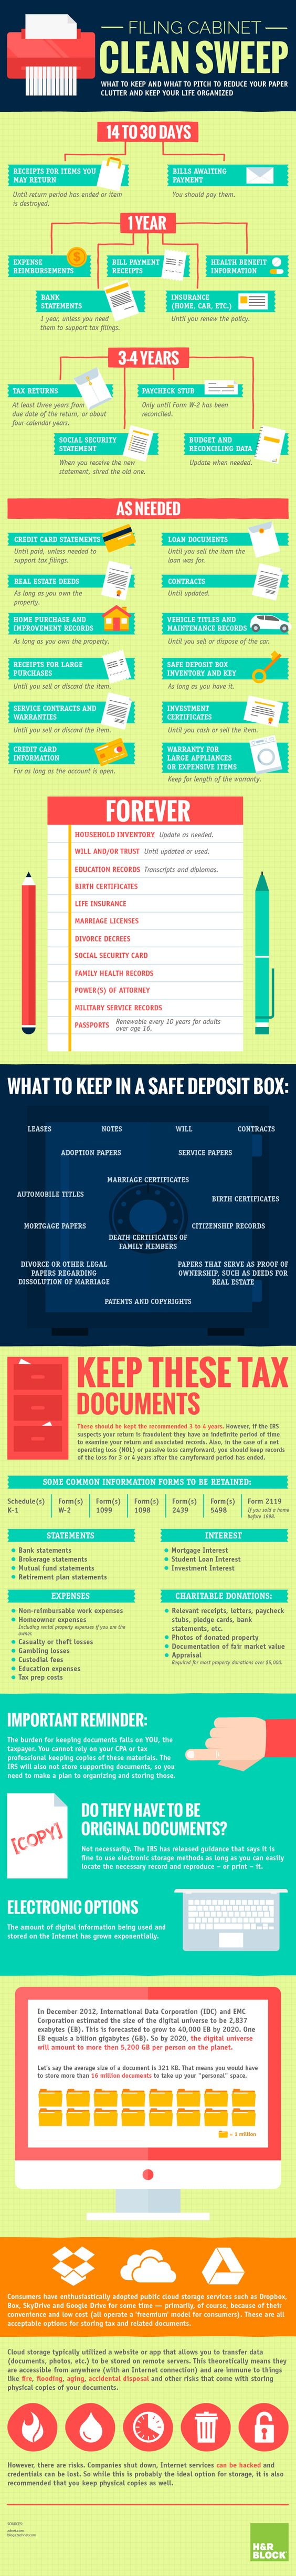 Looking to do a little clean up? This guide can help you sort through the stack of documents, receipts and other papers that have piled up. Learn what to keep and what to trash.